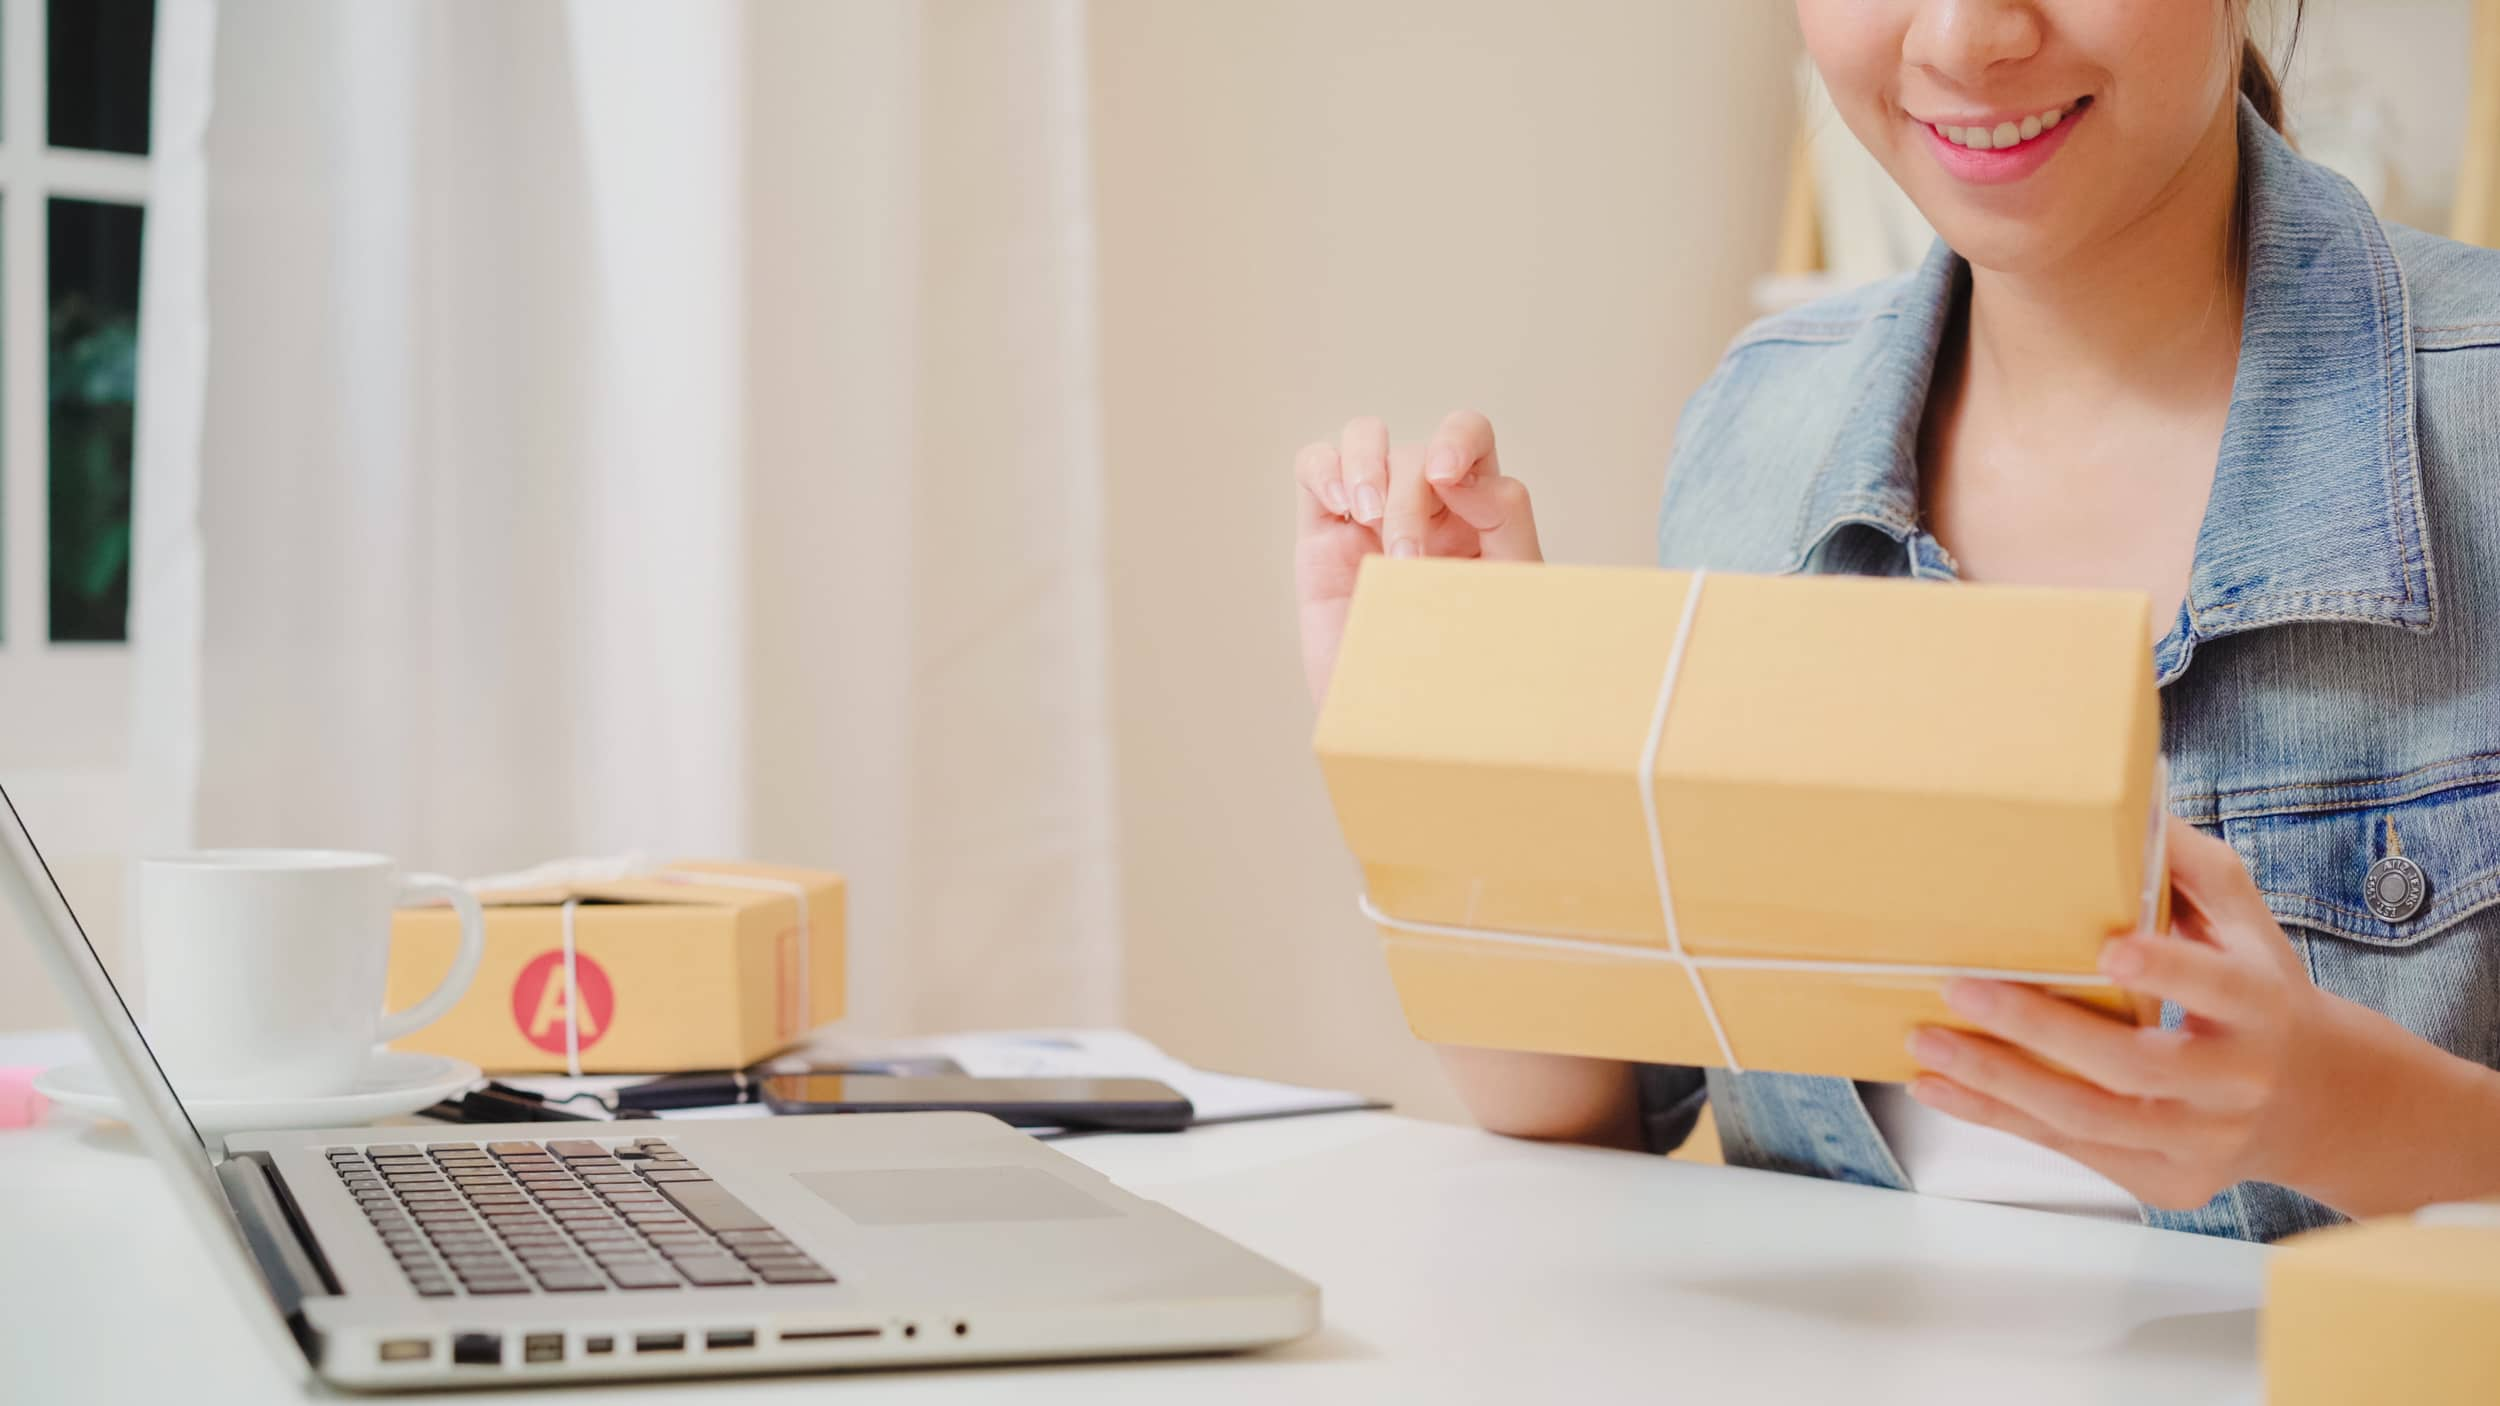 How to Increase Sales By Building an Online Ordering System